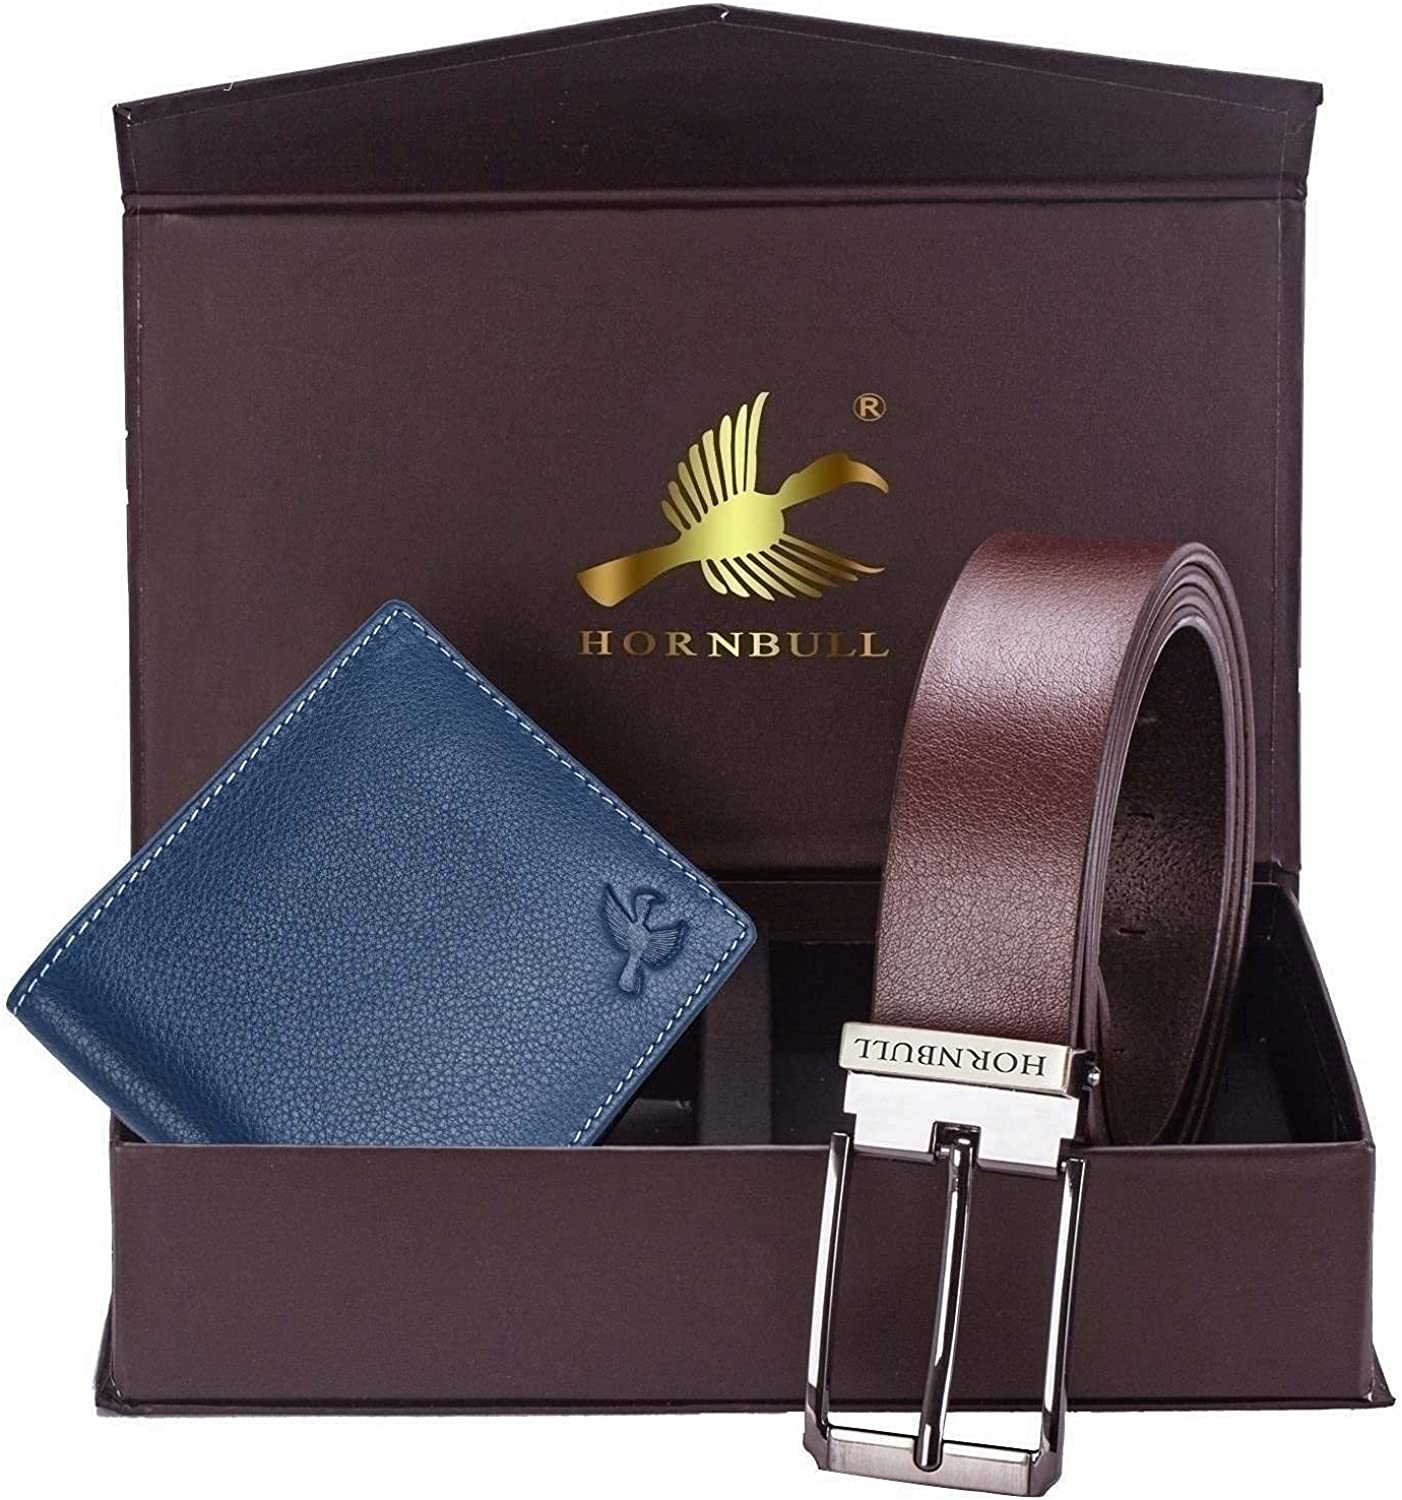 Hornbull Memphis Mall Men's Beauty products Brown Wallet and Belt Combo BW9255